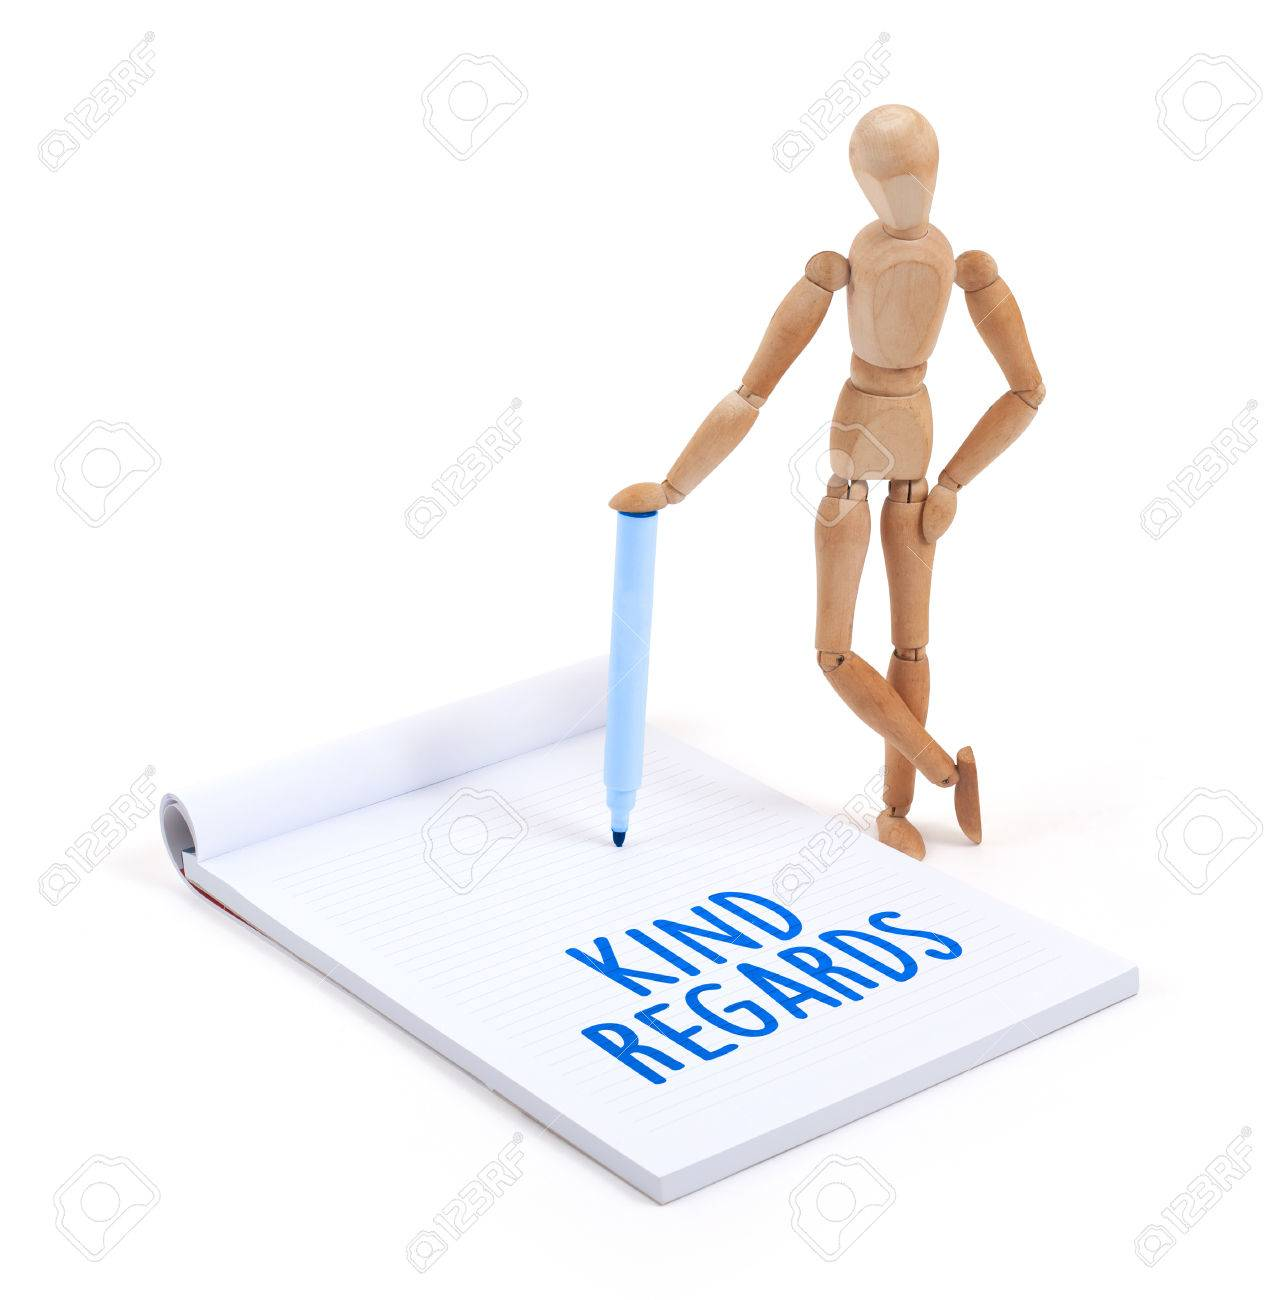 Wooden Mannequin Writing In A Scrapbook